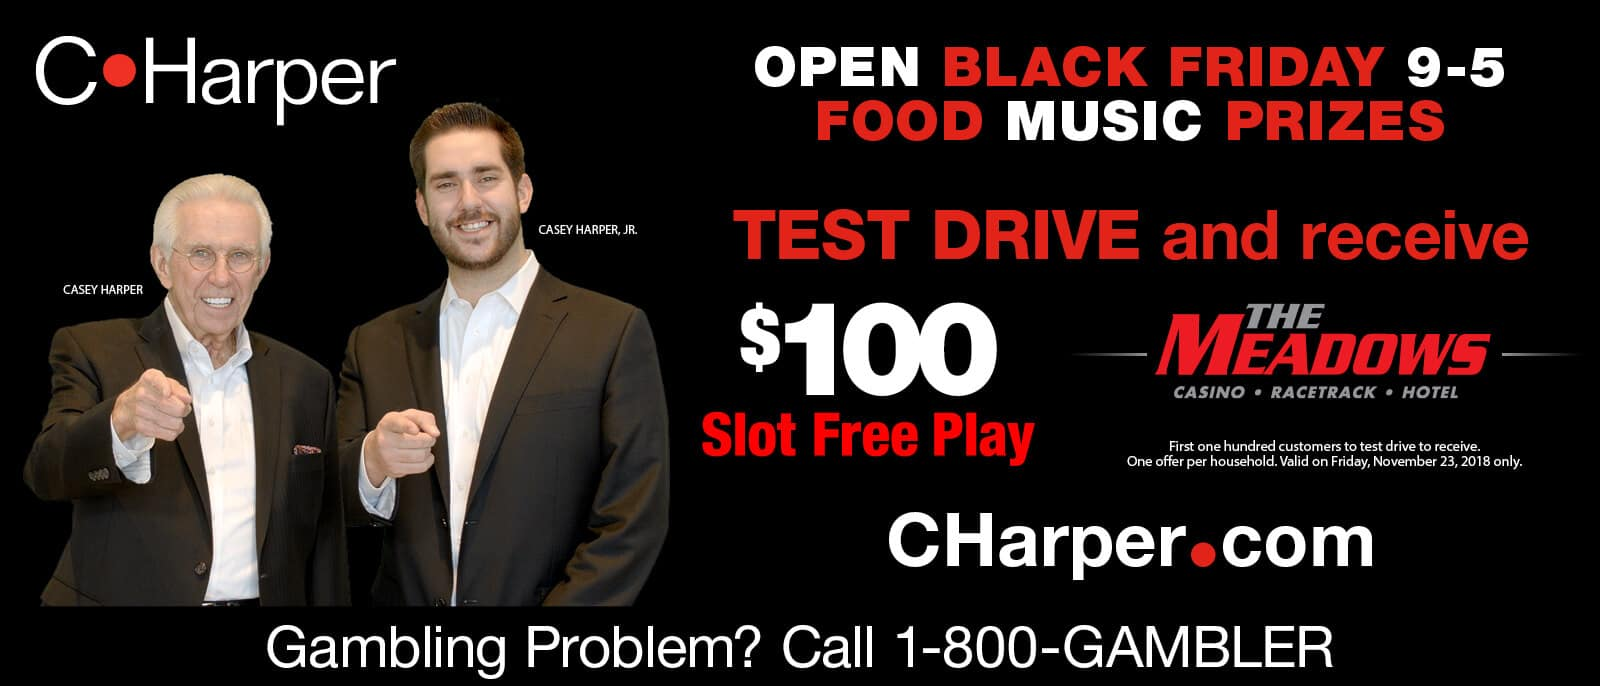 Test drive on Black Friday and receive $100 Slot Free Play at the Meadows!